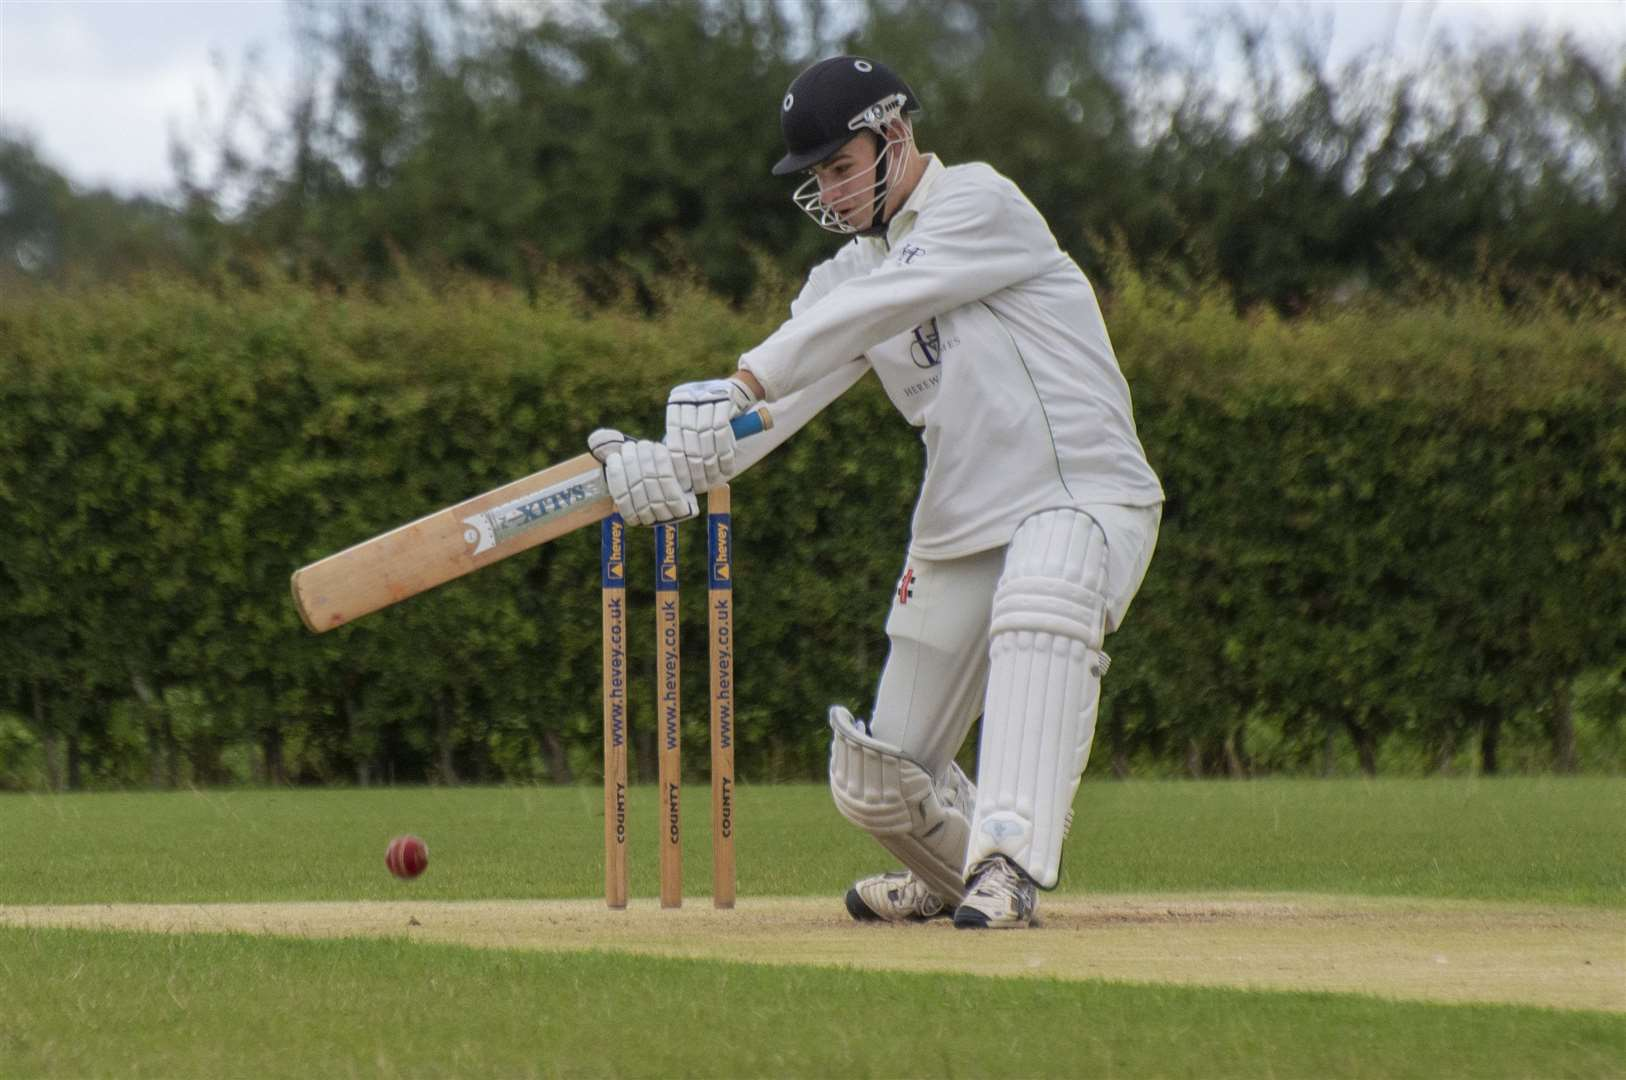 Uppingham were defeated by Ufford Park in Sunday's Division Two tussle. Photo: Lee Hellwing (15494176)